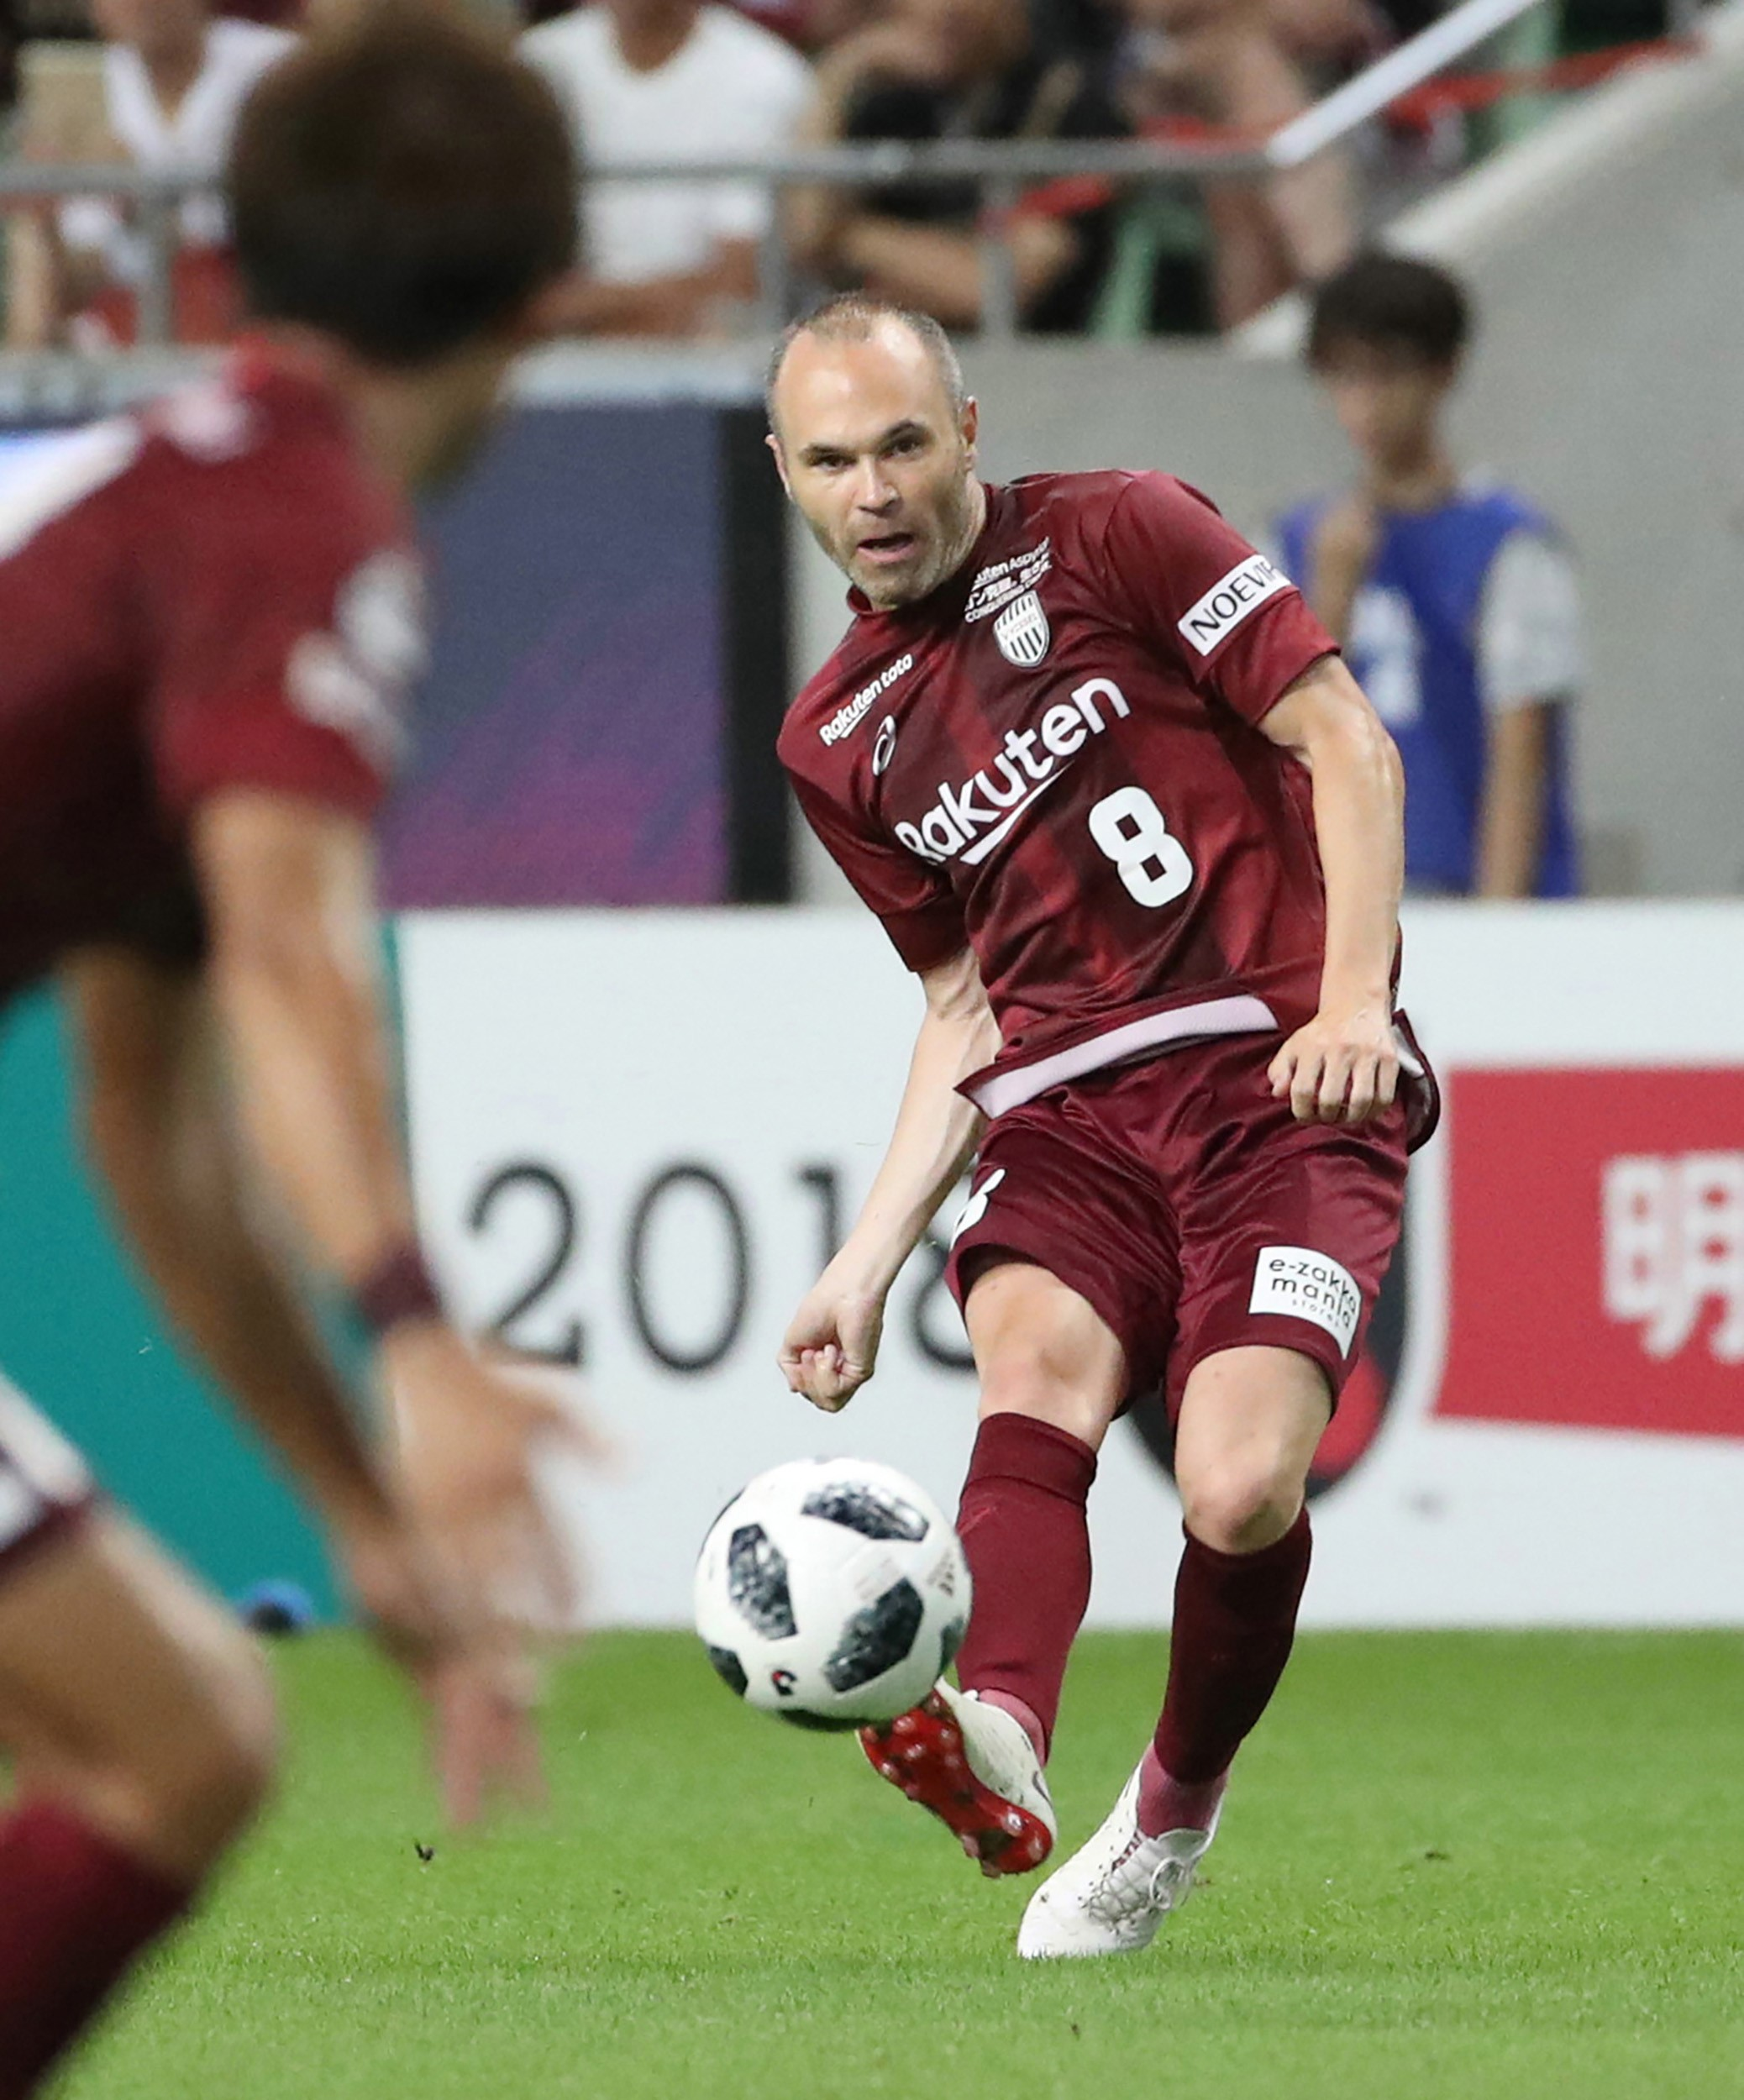 J-League club team Vissel Kobe's new signing, Spanish player Andres Iniesta (R), kicks the ball during a football match against Shonan Bellmare at Noevir Stadium in Kobe, Hyogo prefecture on July 22, 2018.